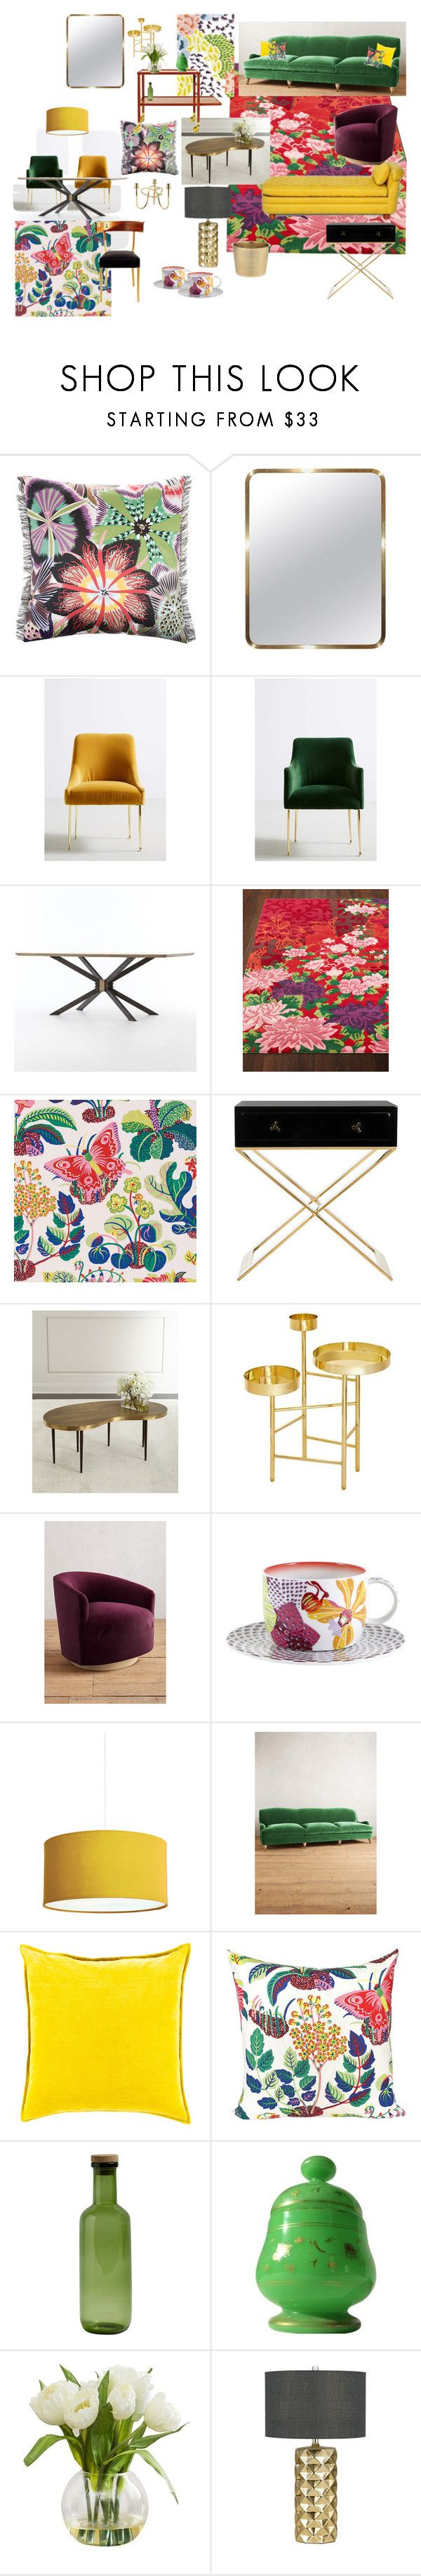 """My Mothers living room"" by lipe-1 on Polyvore featuring interior, interiors, interior design, home, home decor, interior decorating, Missoni Home, Paul Frank, Anthropologie and Safavieh"